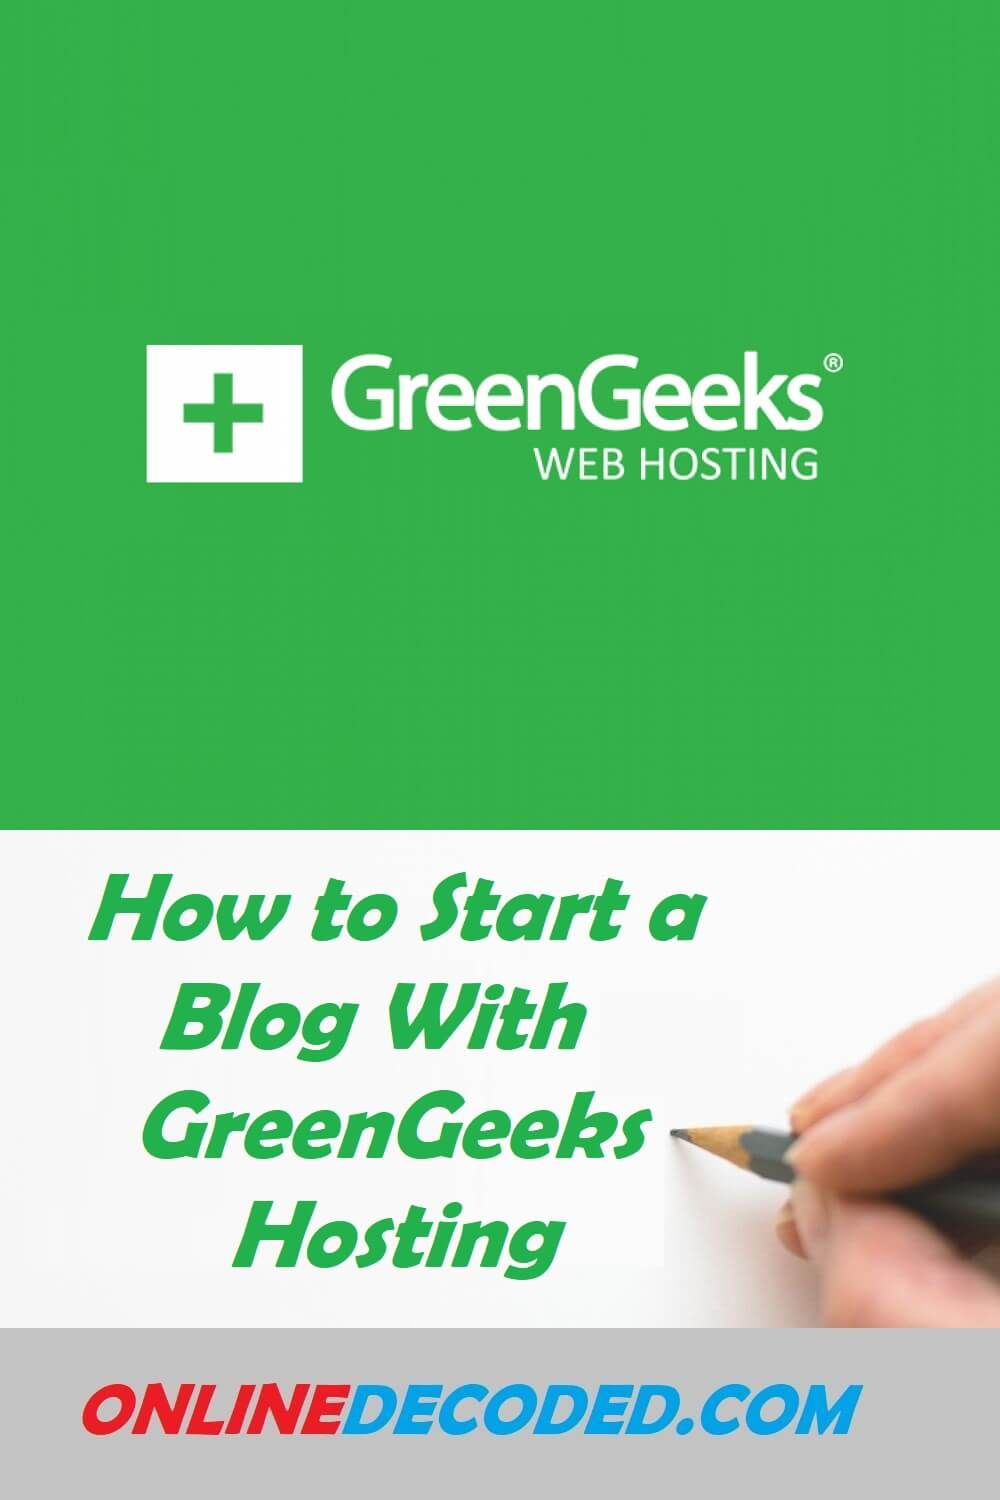 How to Start a Blog with GreenGeeks Easily in 2021?